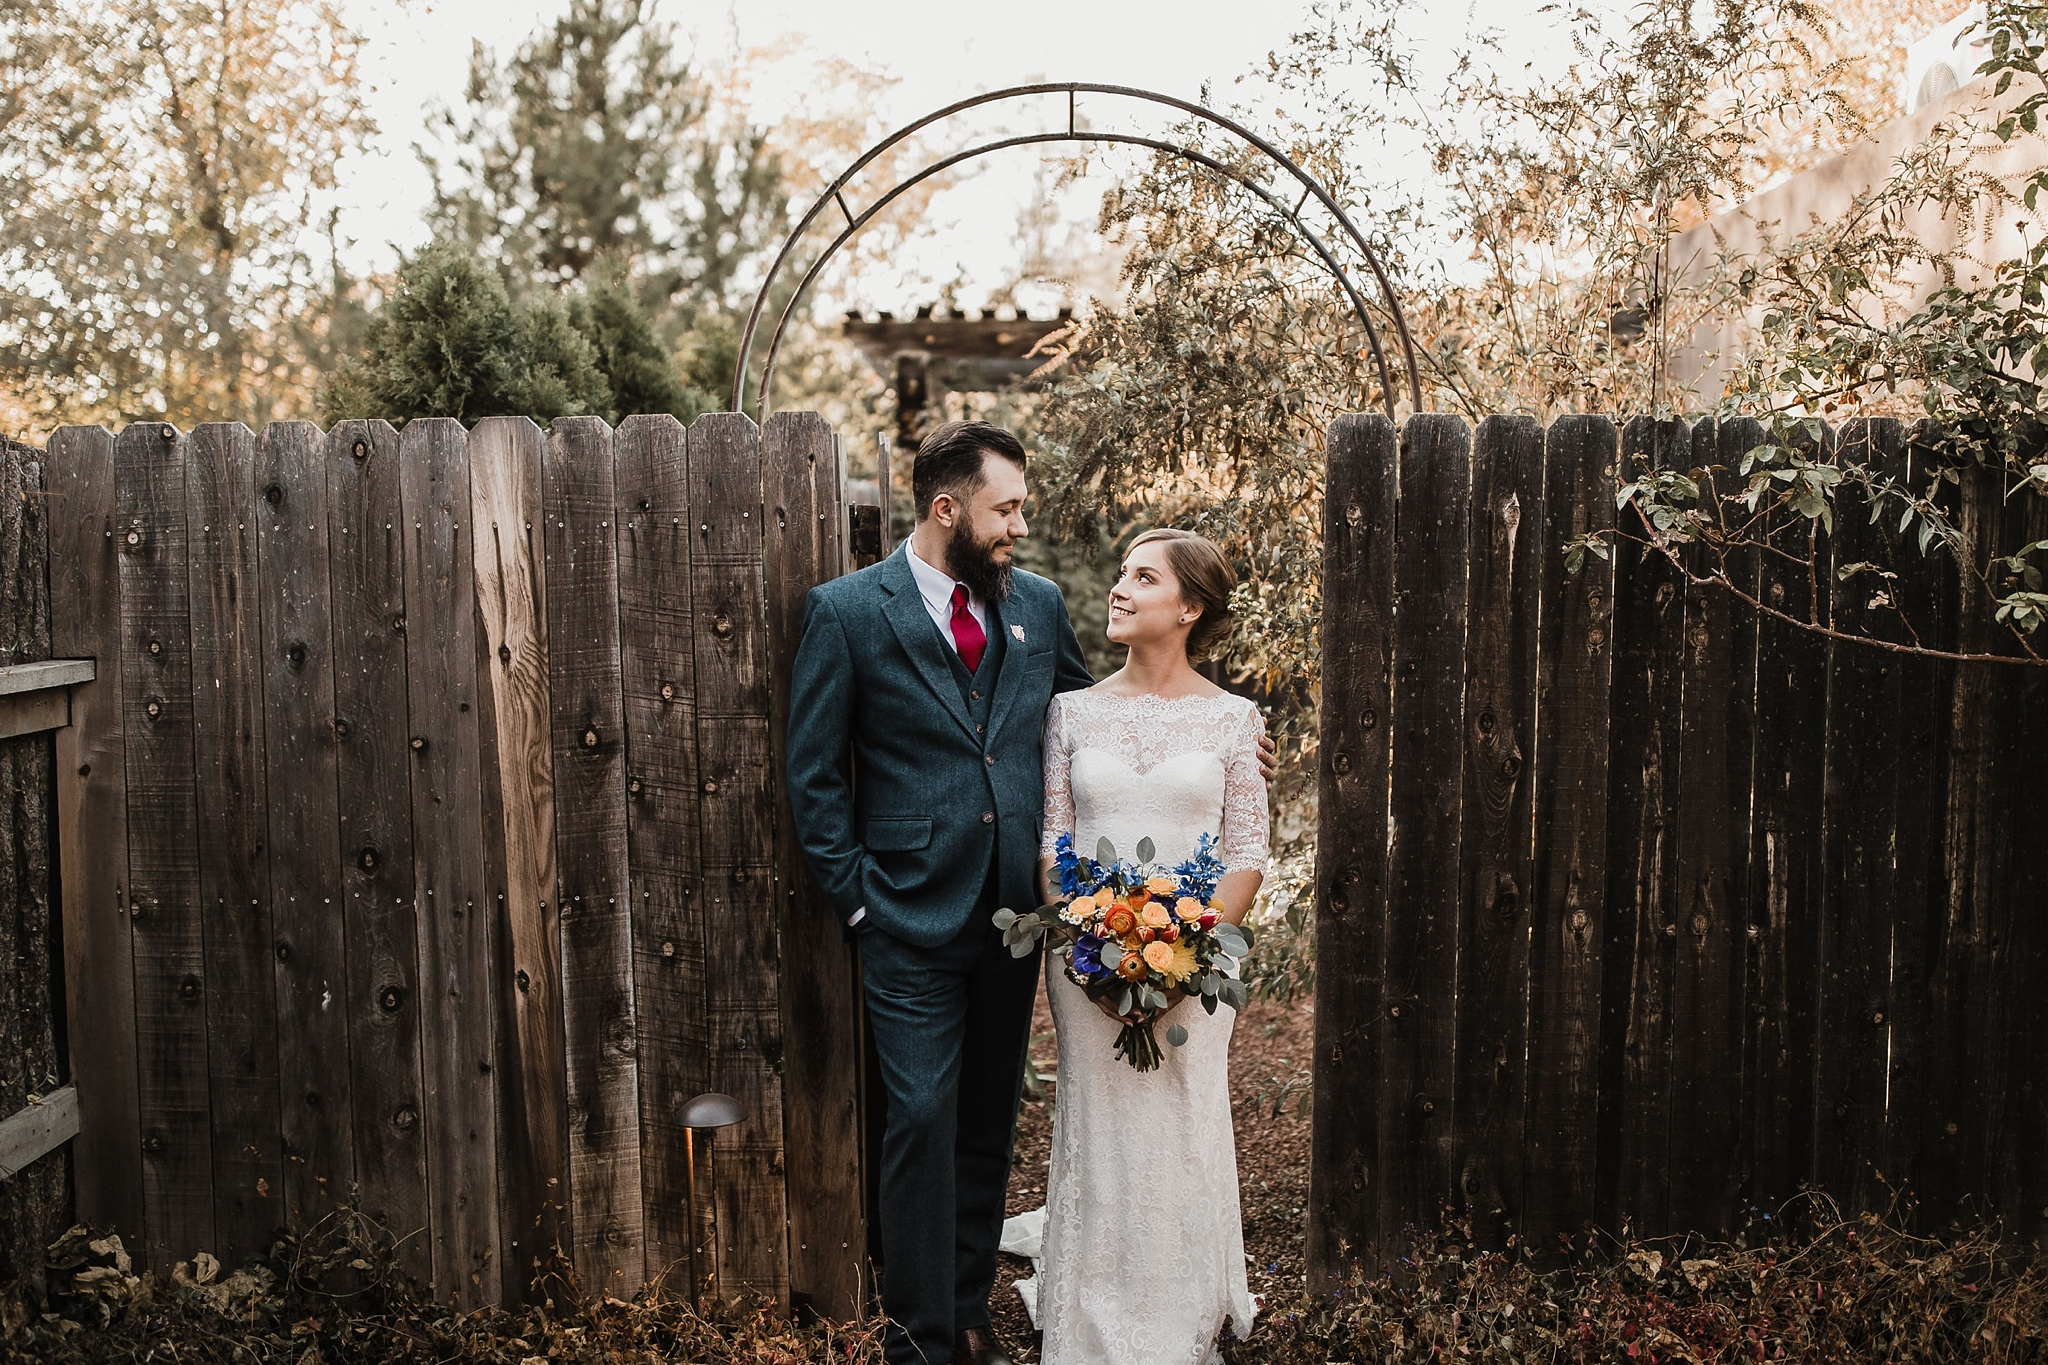 Alicia+lucia+photography+-+albuquerque+wedding+photographer+-+santa+fe+wedding+photography+-+new+mexico+wedding+photographer+-+albuquerque+wedding+-+sarabande+bed+breakfast+-+bed+and+breakfast+wedding_0093.jpg